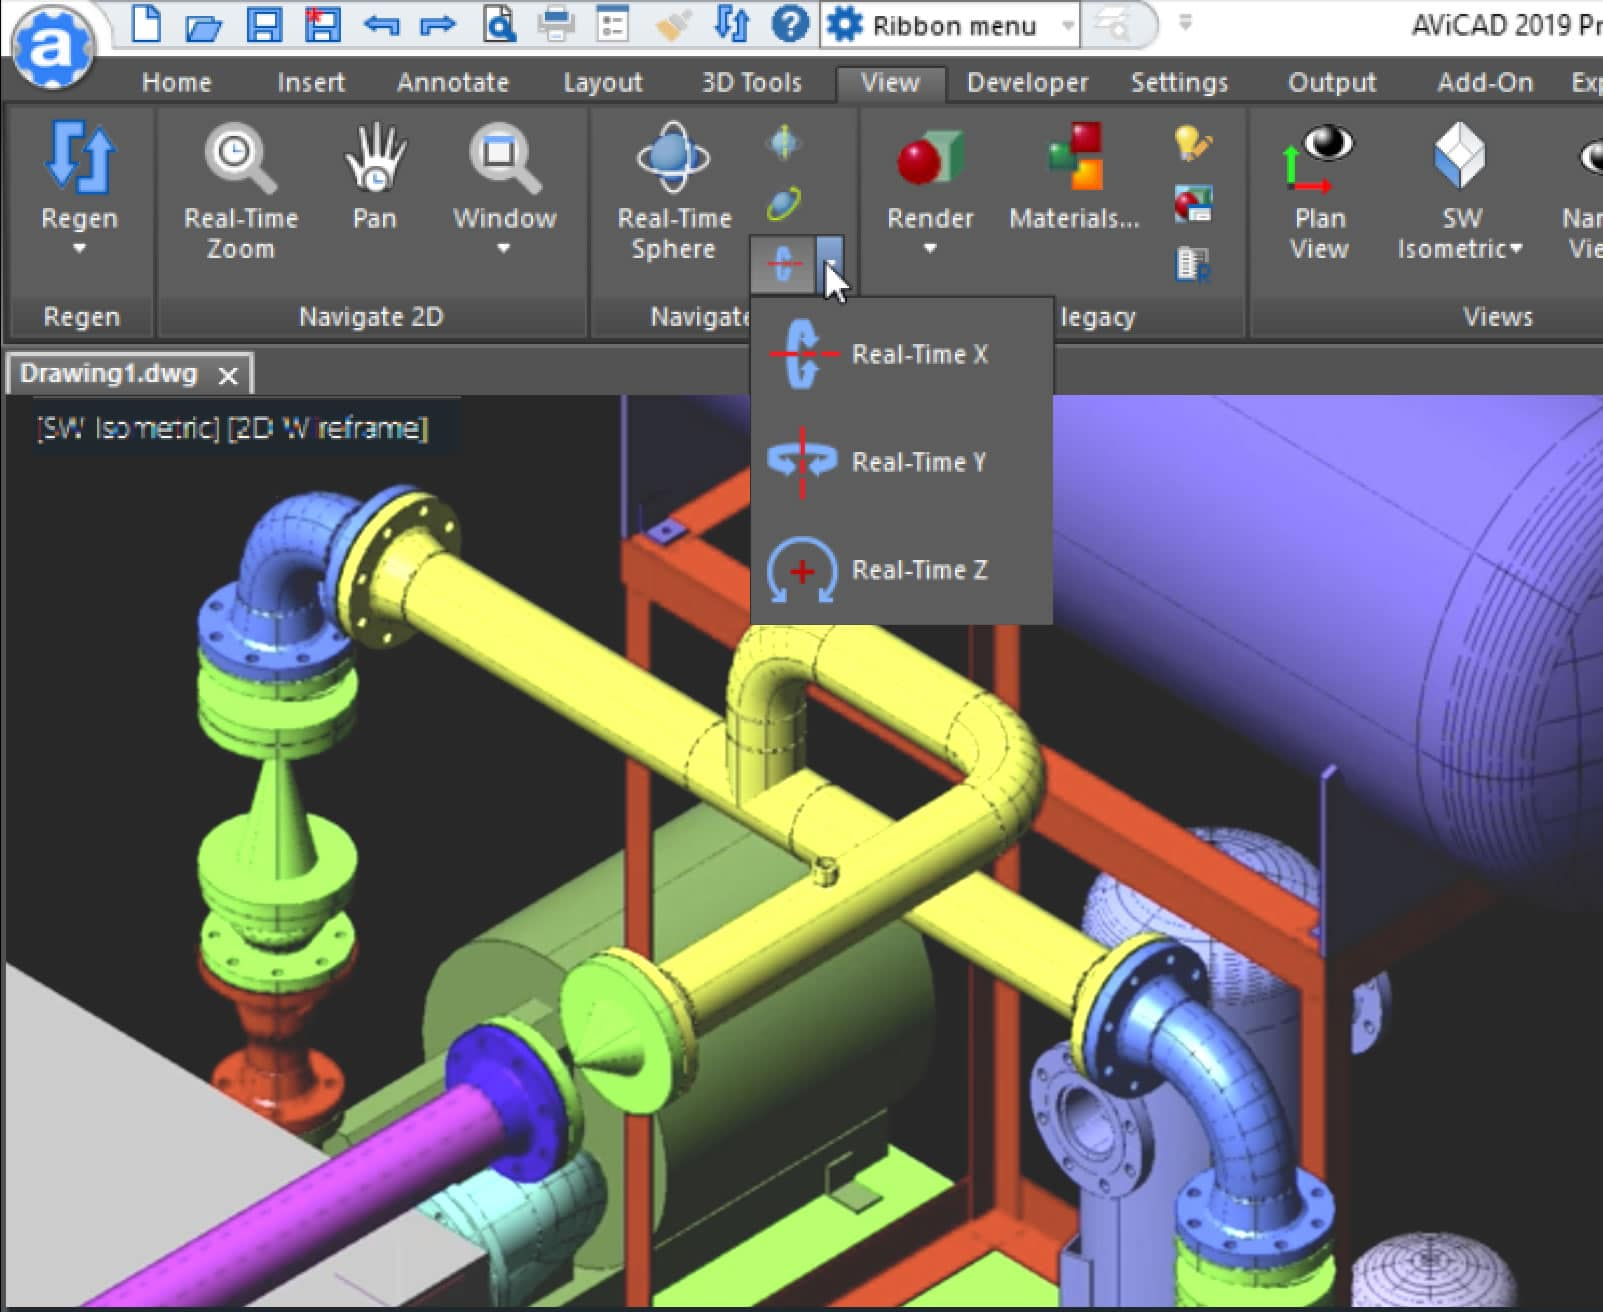 AViCAD 3D Piping Menu